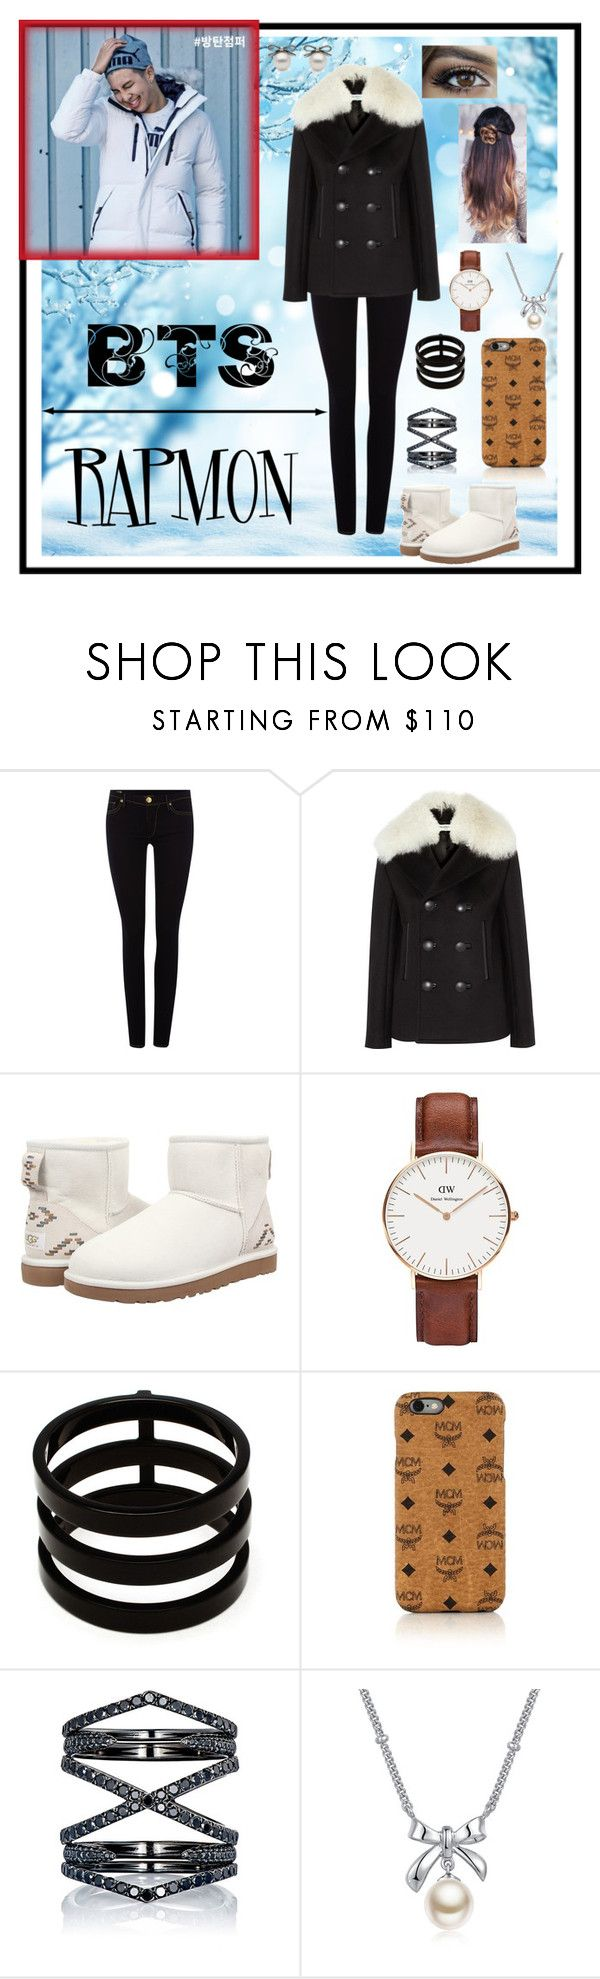 """~RapMon :: Play Warm~"" by taeangel ❤ liked on Polyvore featuring True Religion, Balenciaga, UGG Australia, Daniel Wellington, Repossi, MCM, Eva Fehren, MBLife.com, kpop and bts"